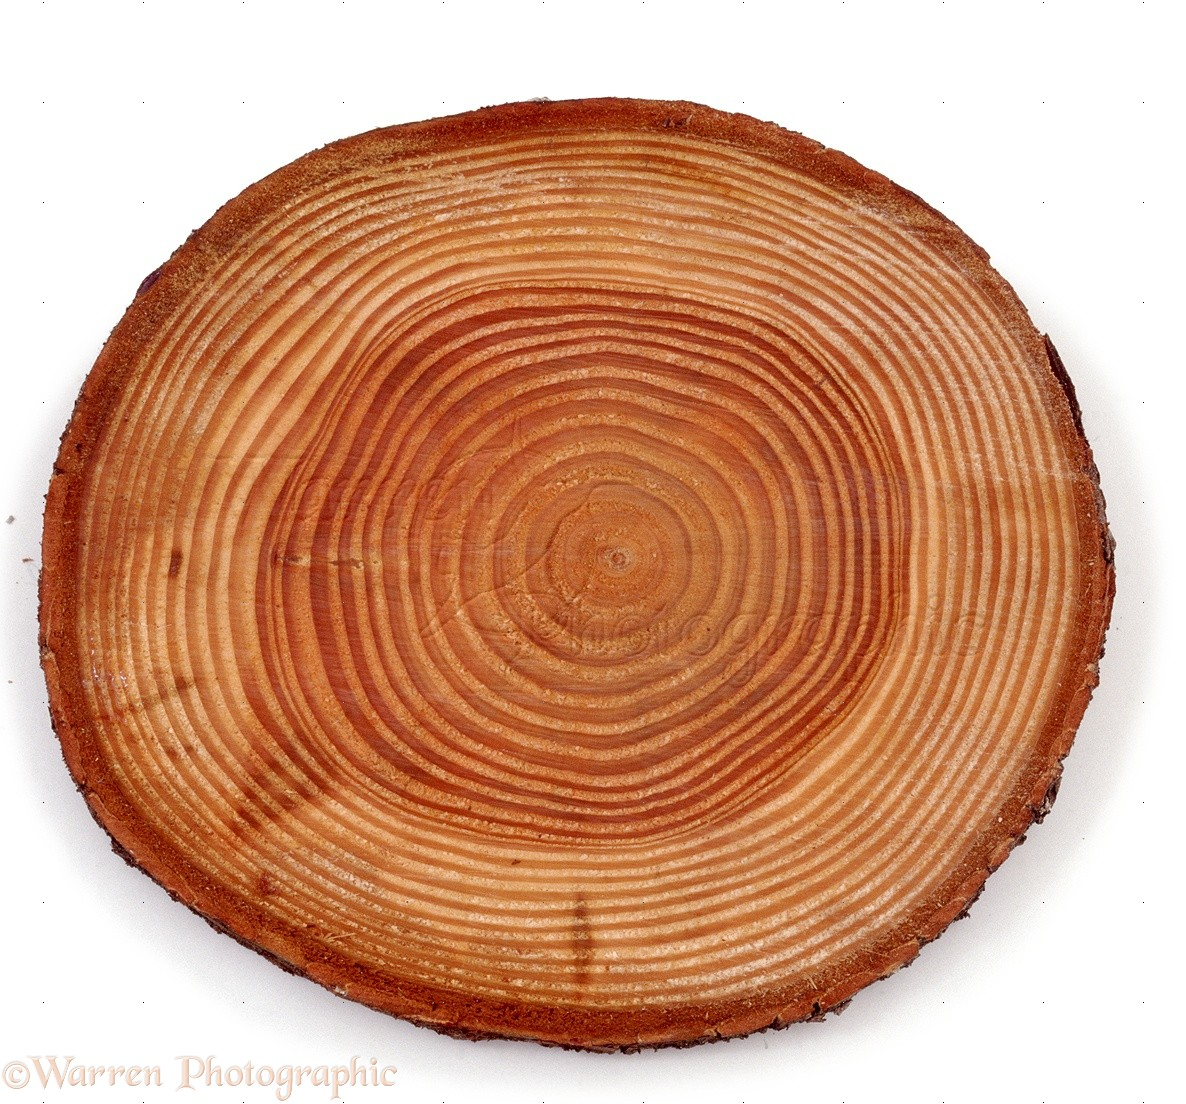 Tree Growth Rings Related Keywords & Suggestions - Tree Growth Rings ...